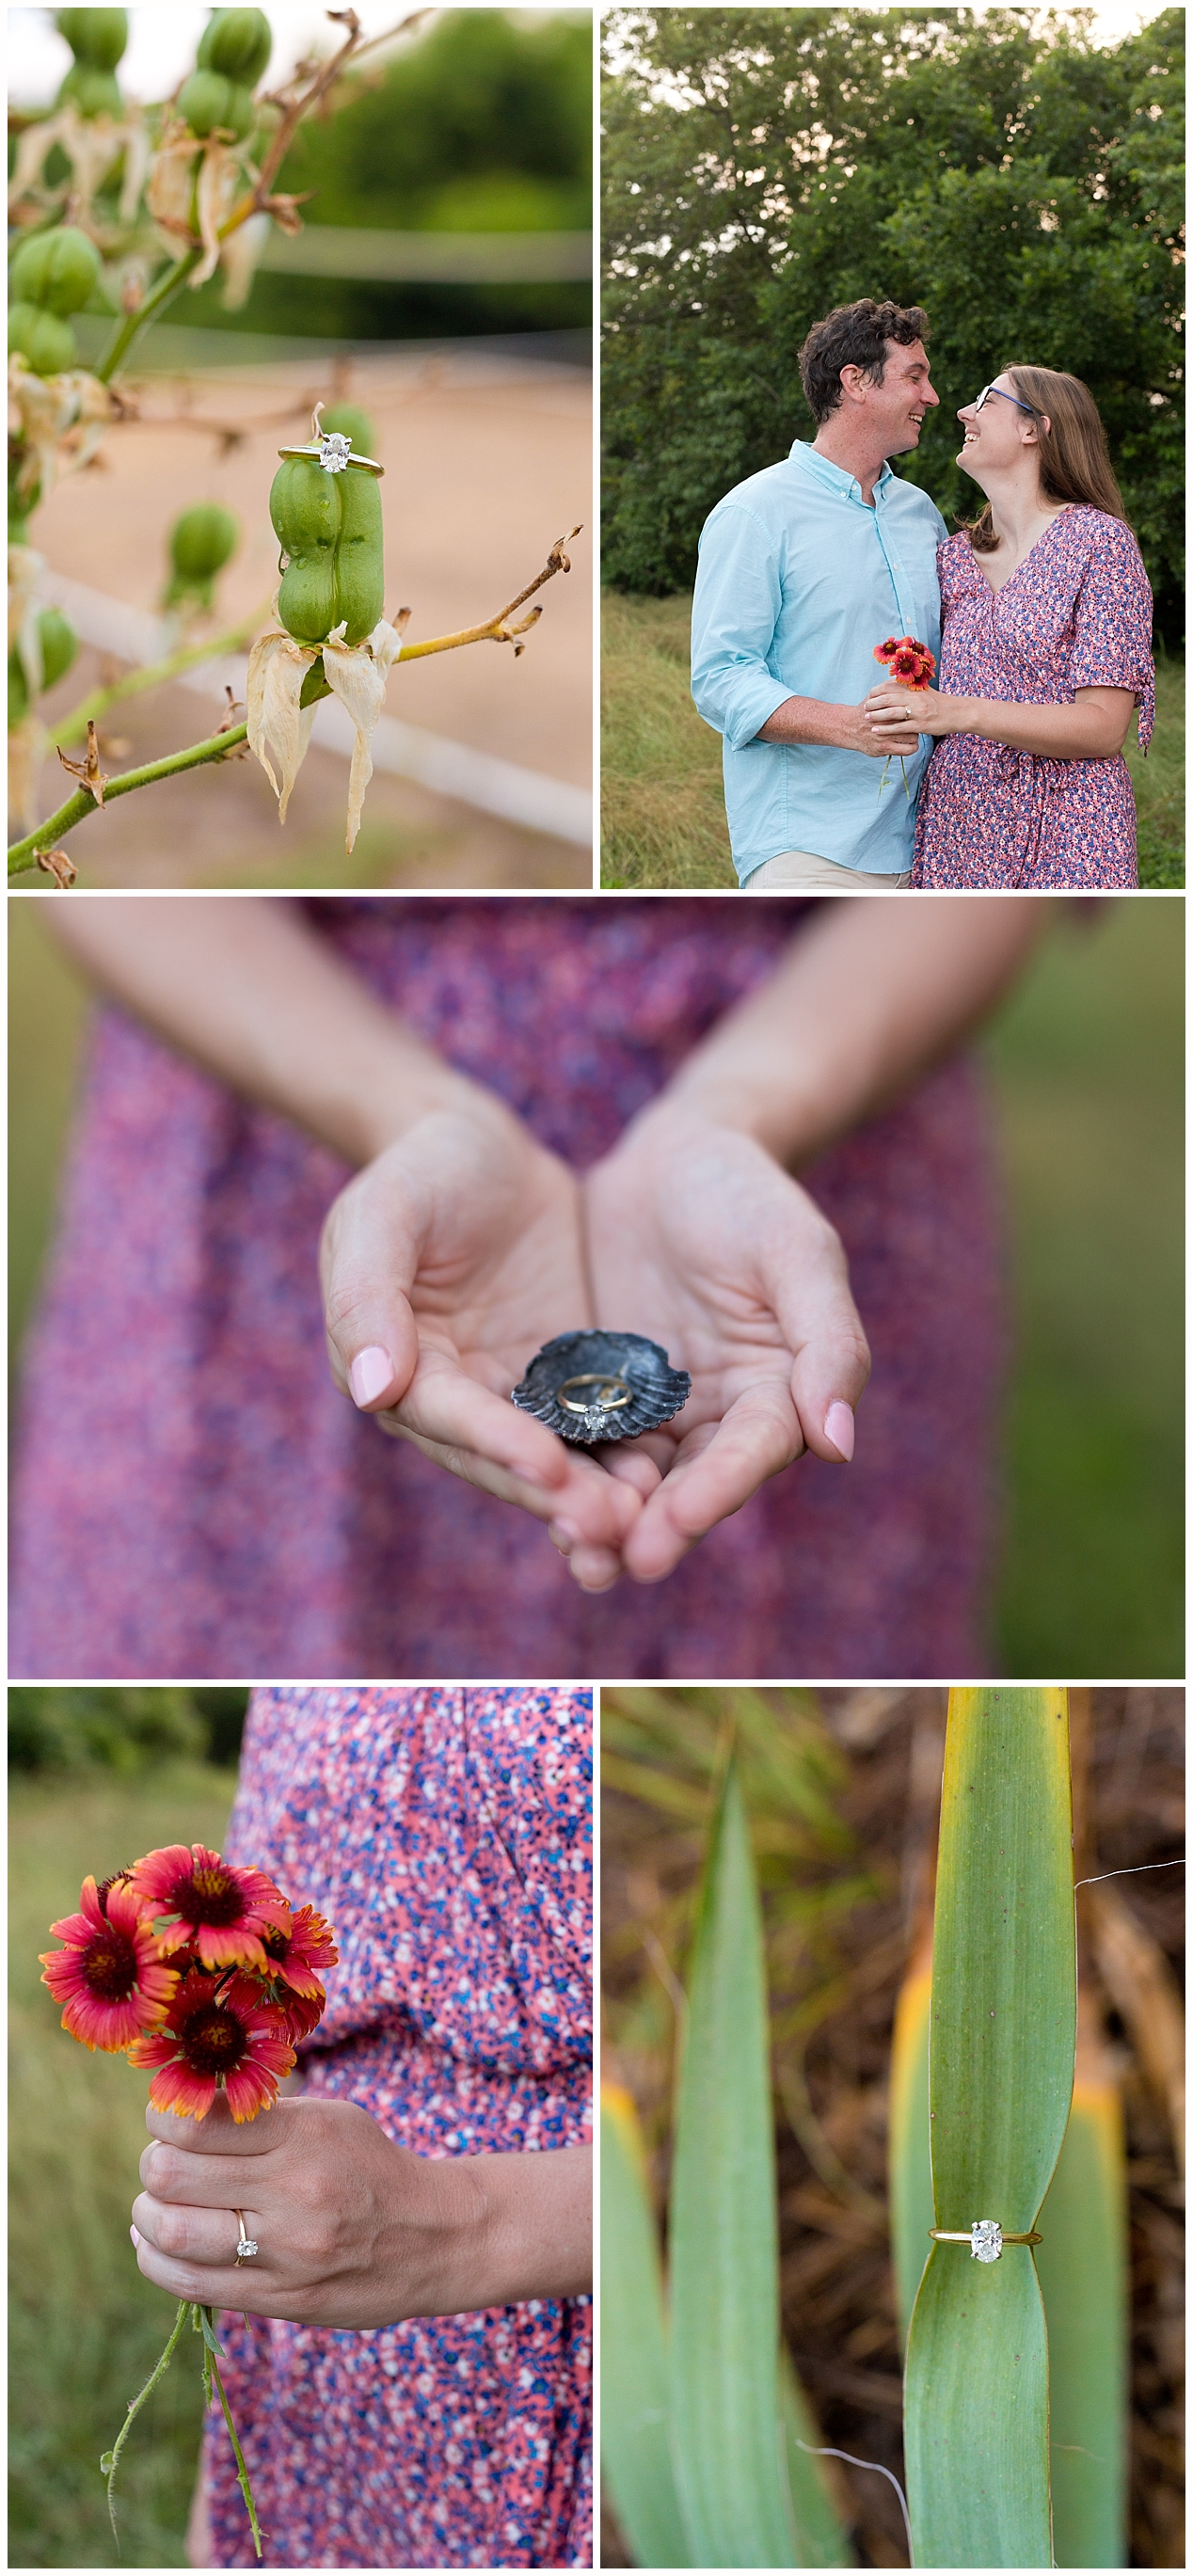 diamond engagement ring photos with seashell, wildflowers